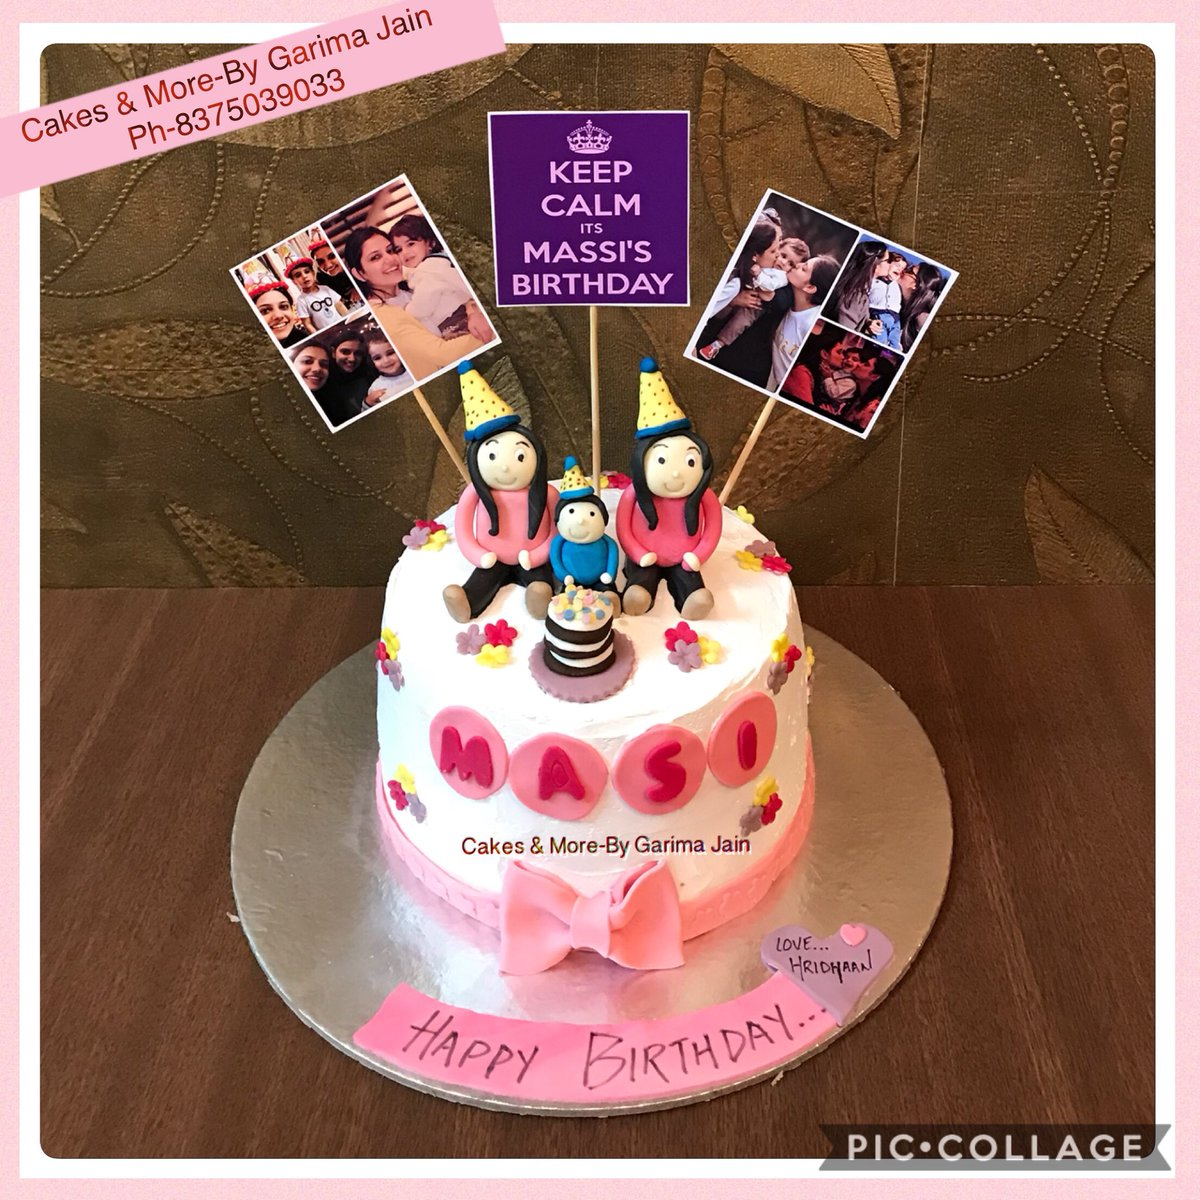 Garima Jain On Twitter CreamCake TwinsBirthdayCake TwinSistersCake MassiNephewCake Surprise Birthday Cake Ordered By Sister Fr Her Twins Sisters Lil